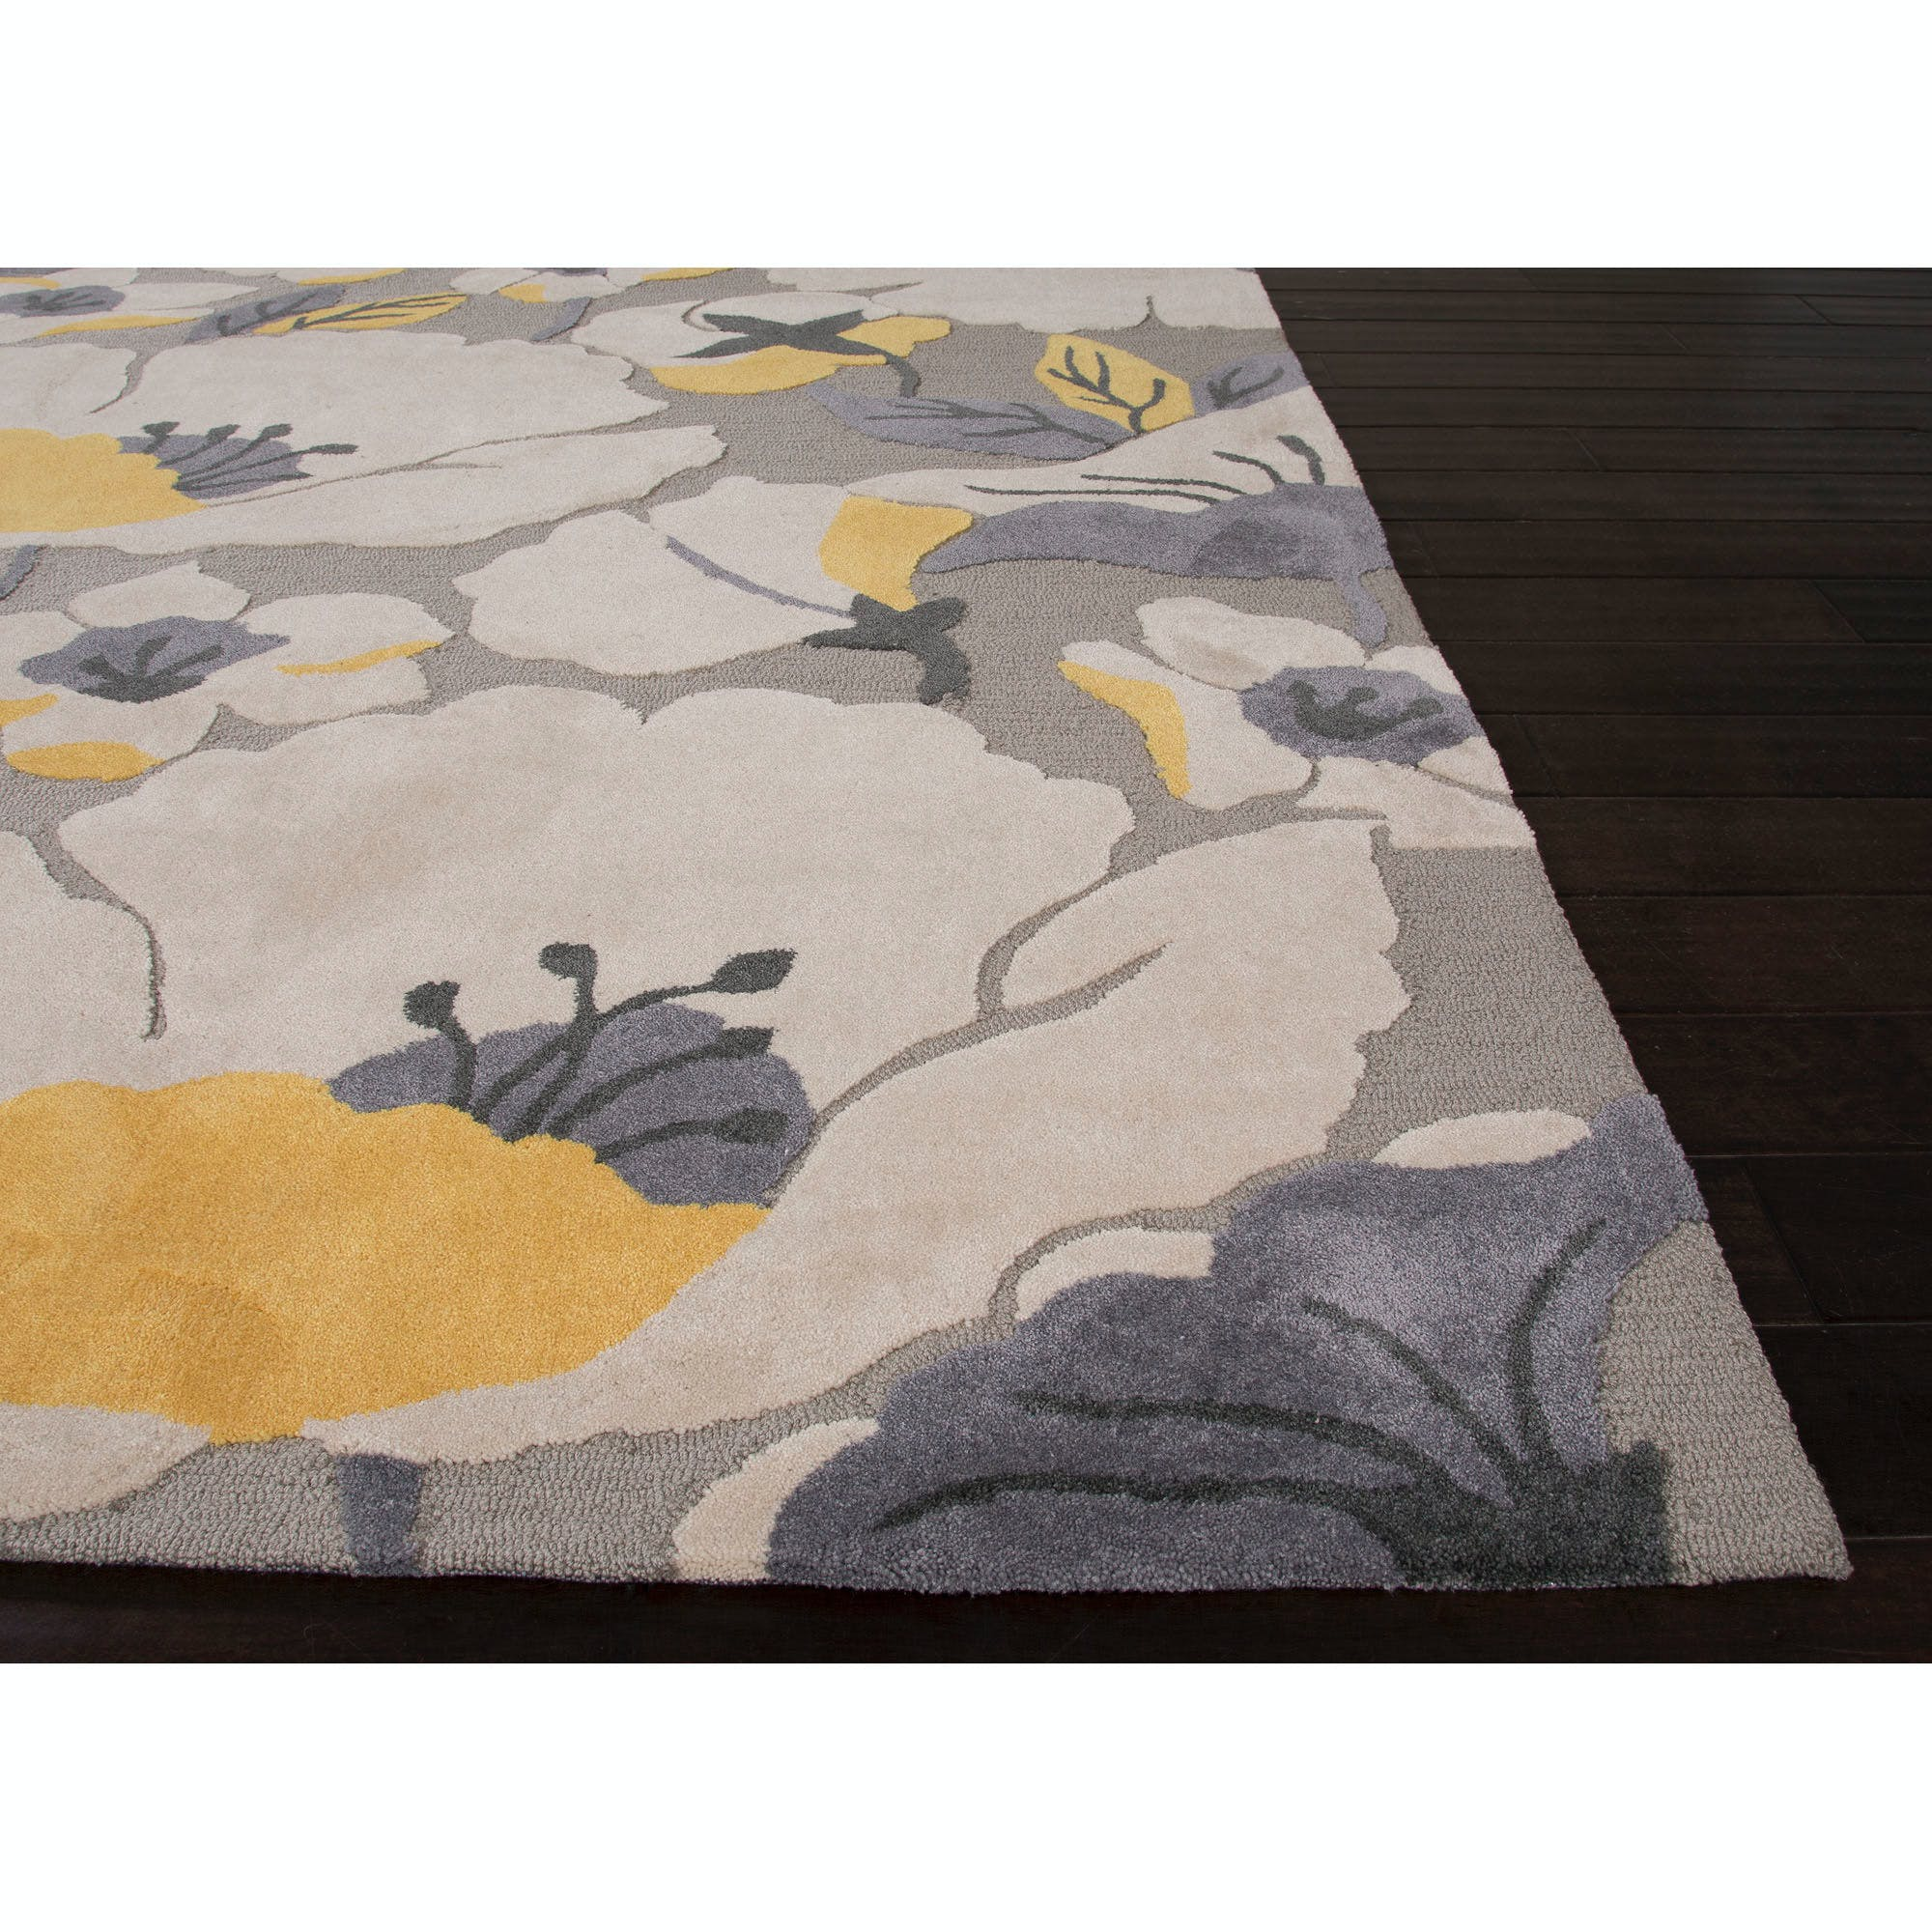 Picture of: Jaipur Rugs Floor Coverings Jaipur Hand Tufted Floral Pattern Gray Yellows Gold Polyester 5×7 6